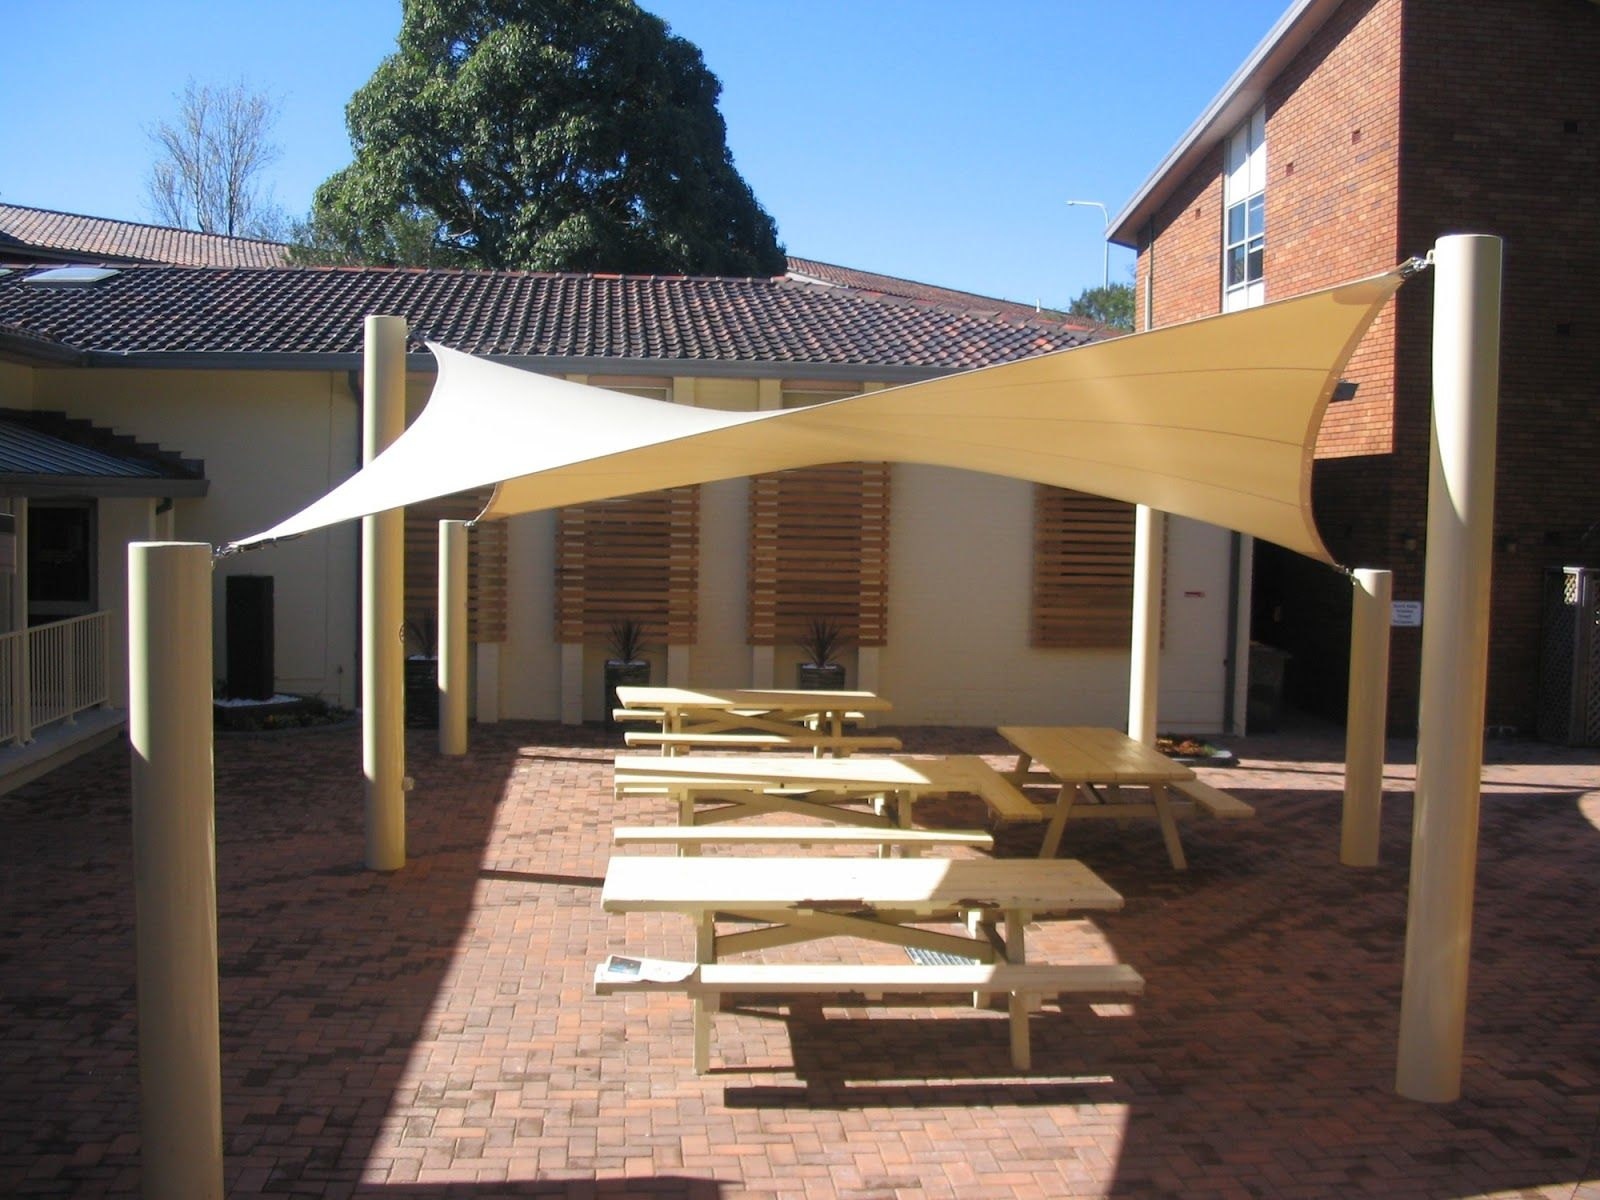 exterior white canvas pool shade with relaxing patio chairs decors - Brick Canopy Decor